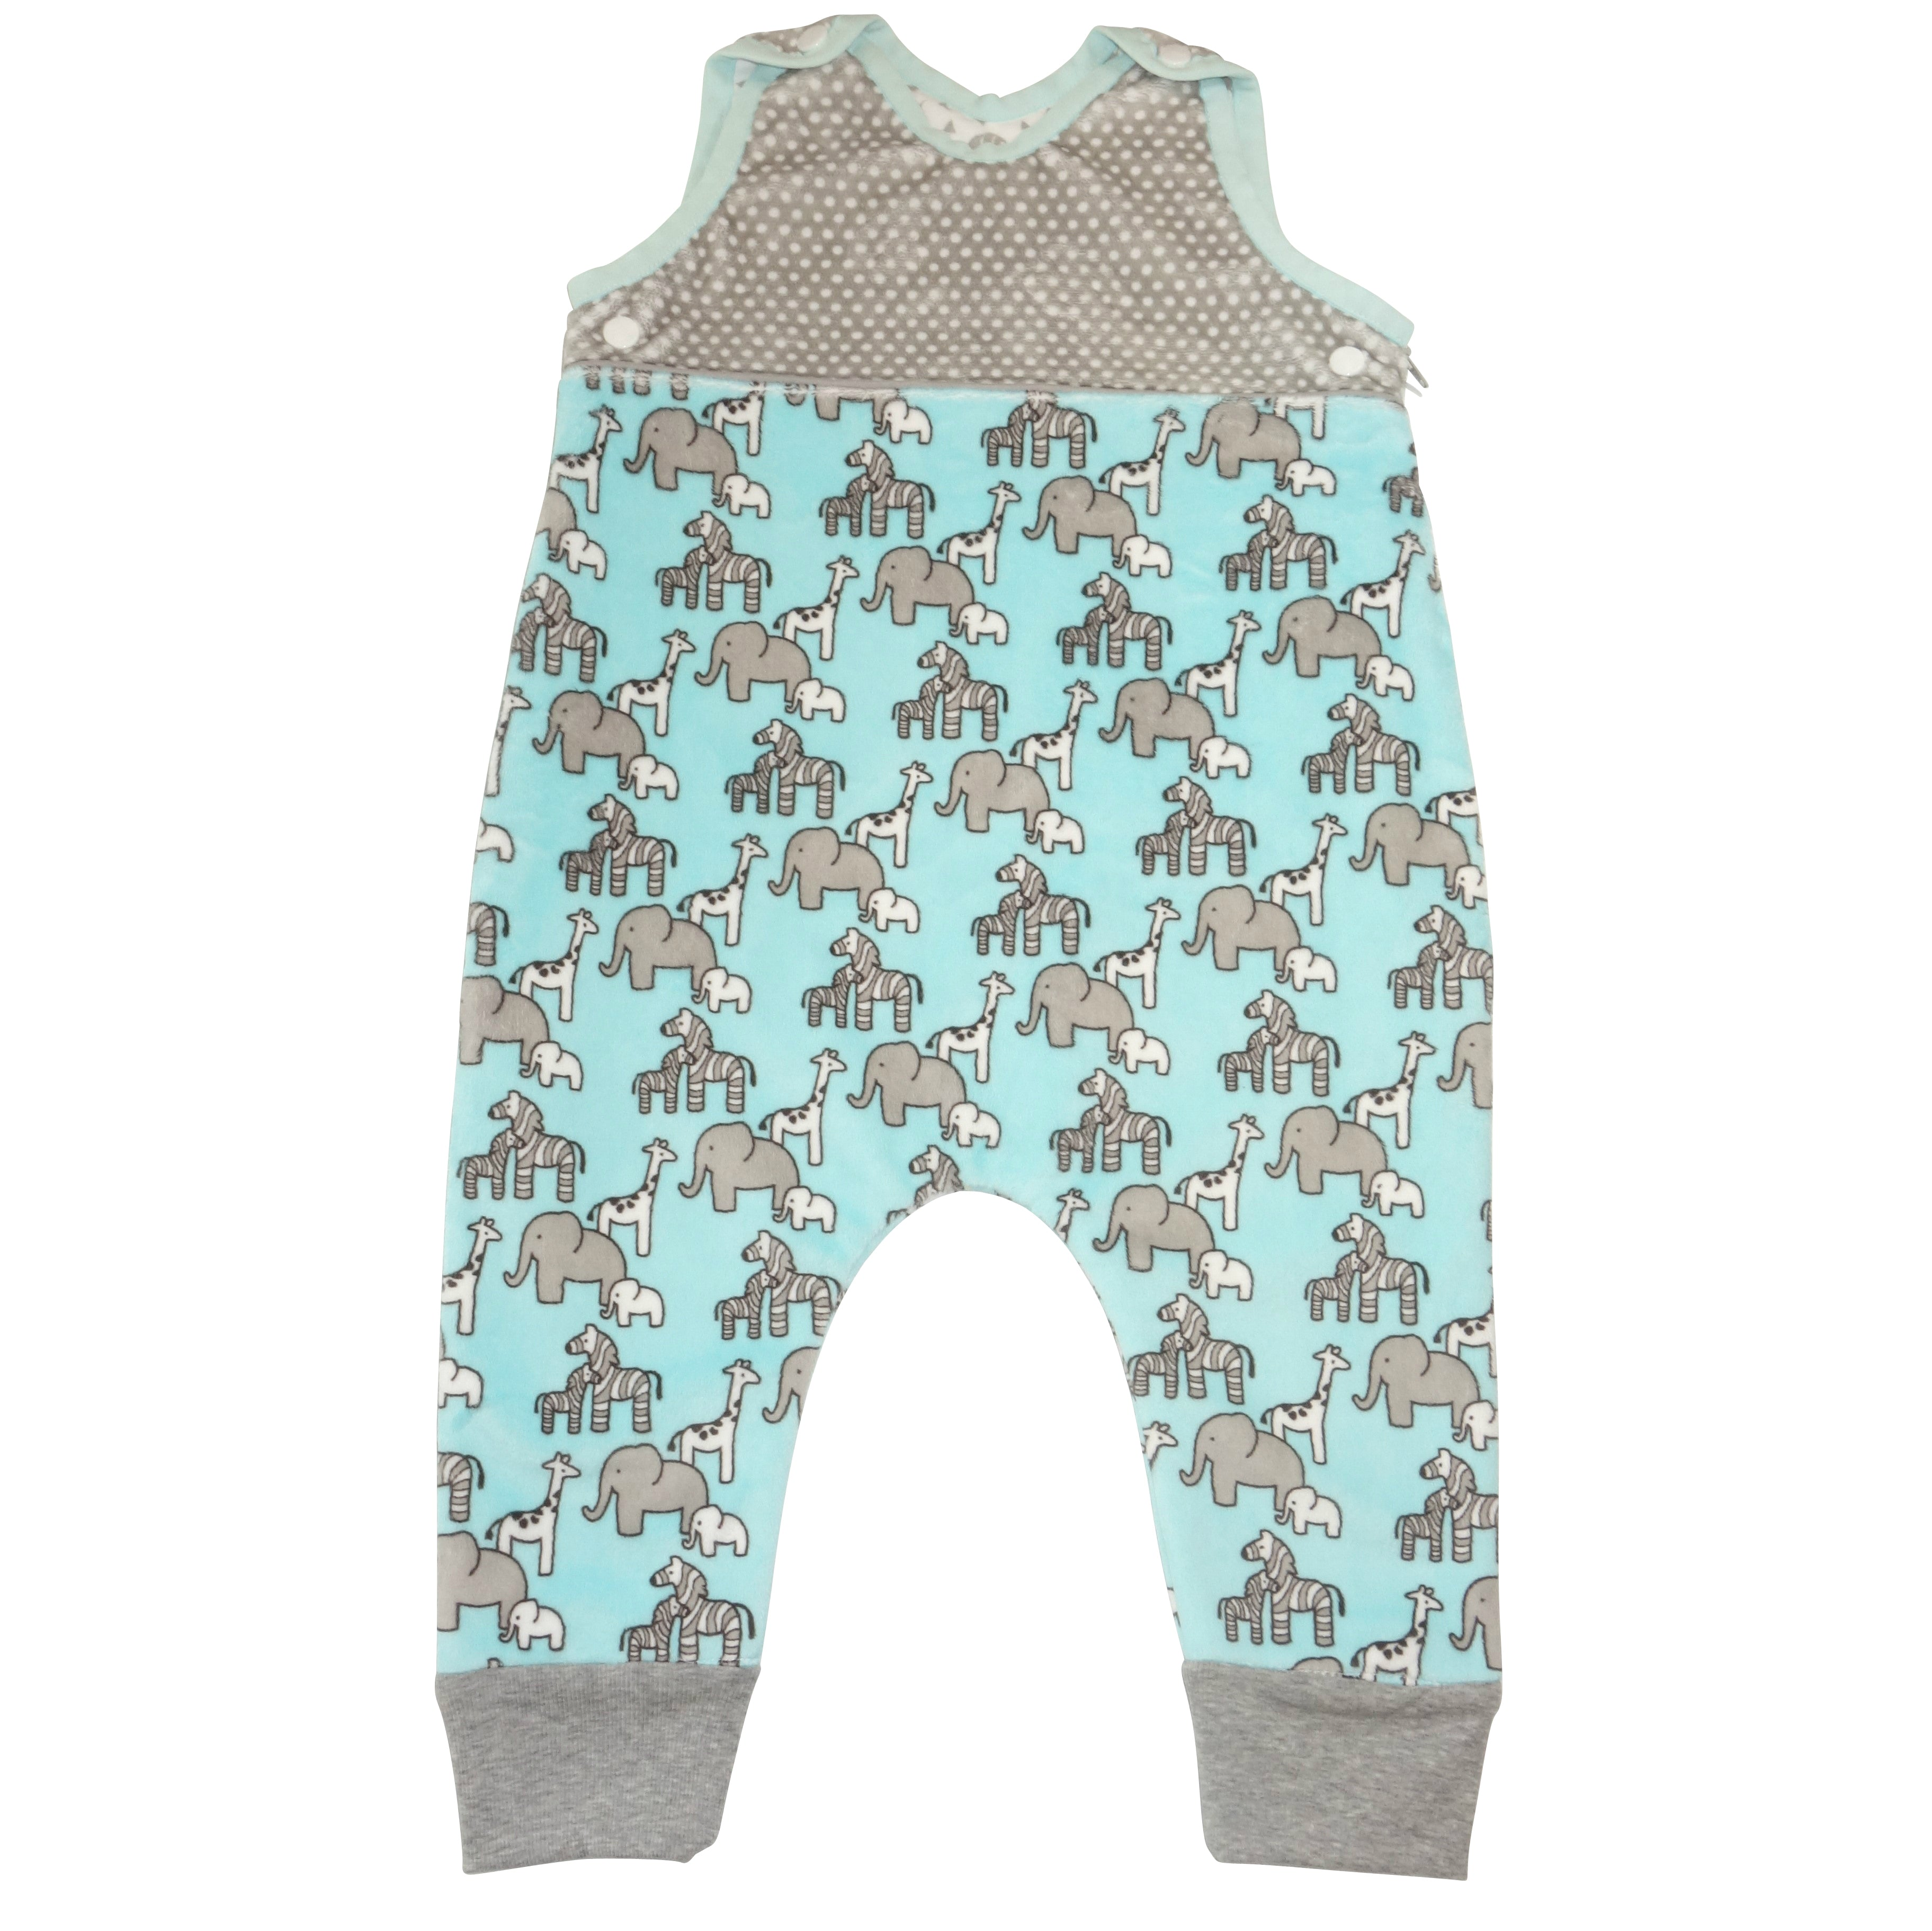 Aqua Zoo Jammies